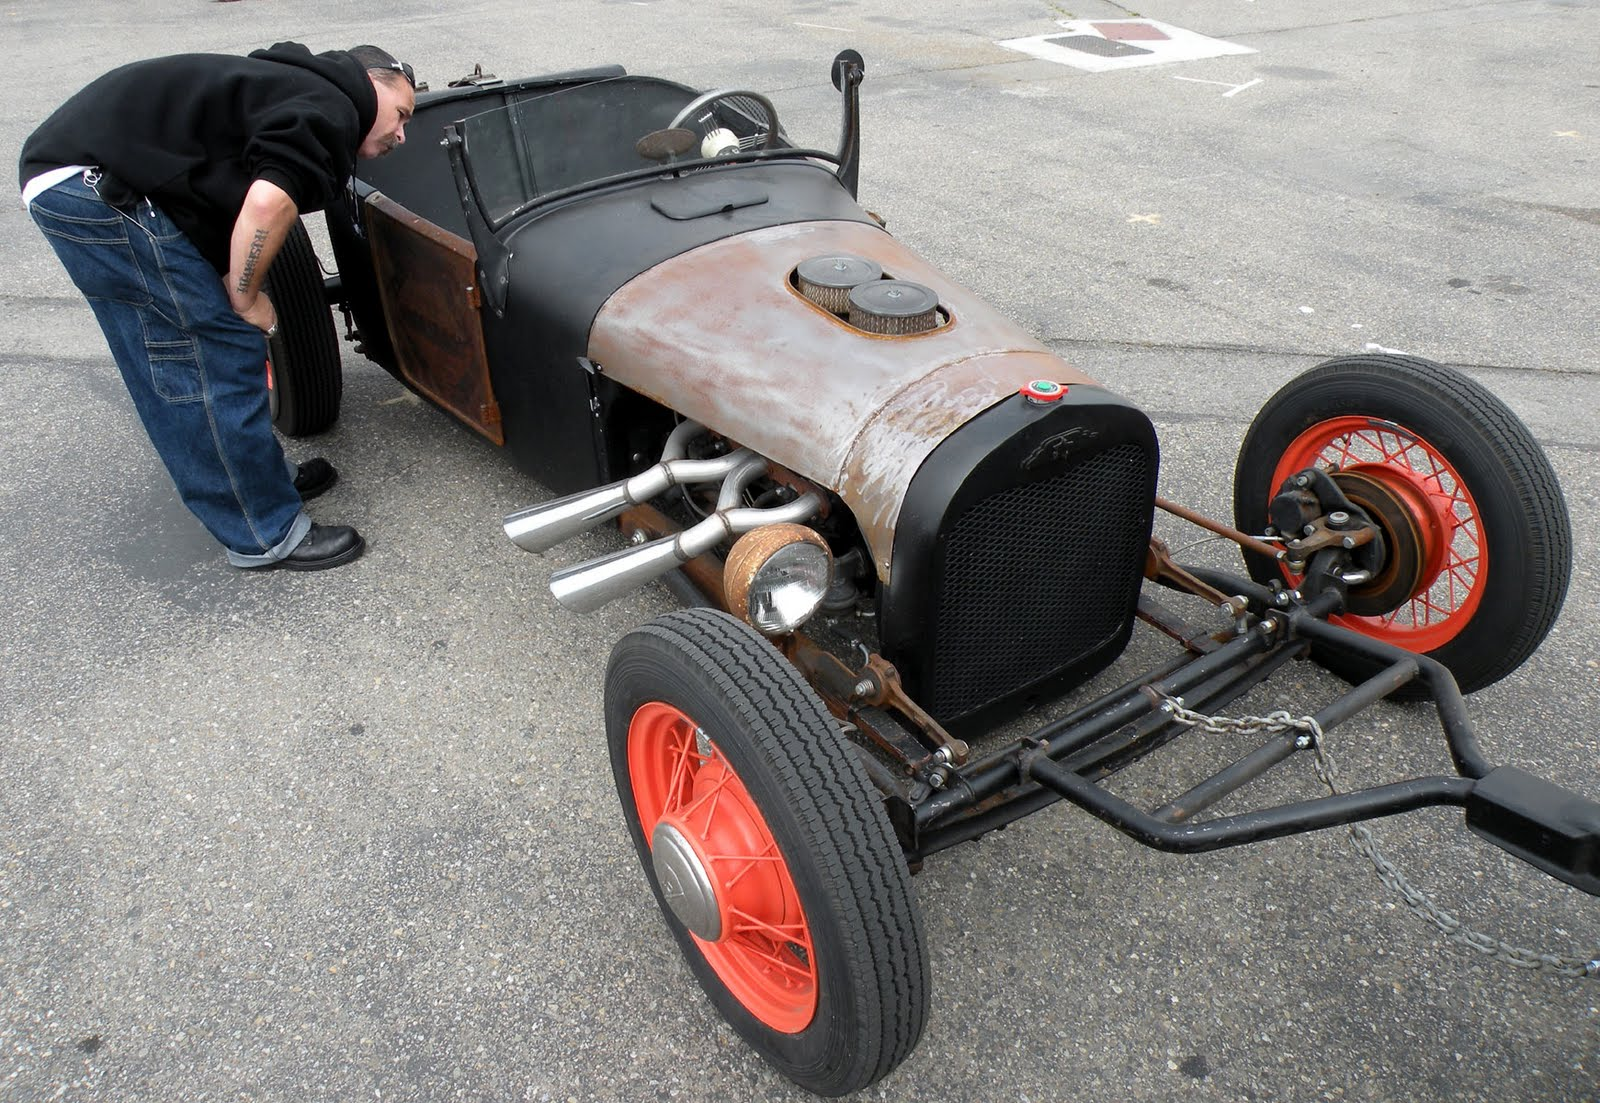 Just A Car Guy: The conrod - hot rod. More uses for used up conrods ...